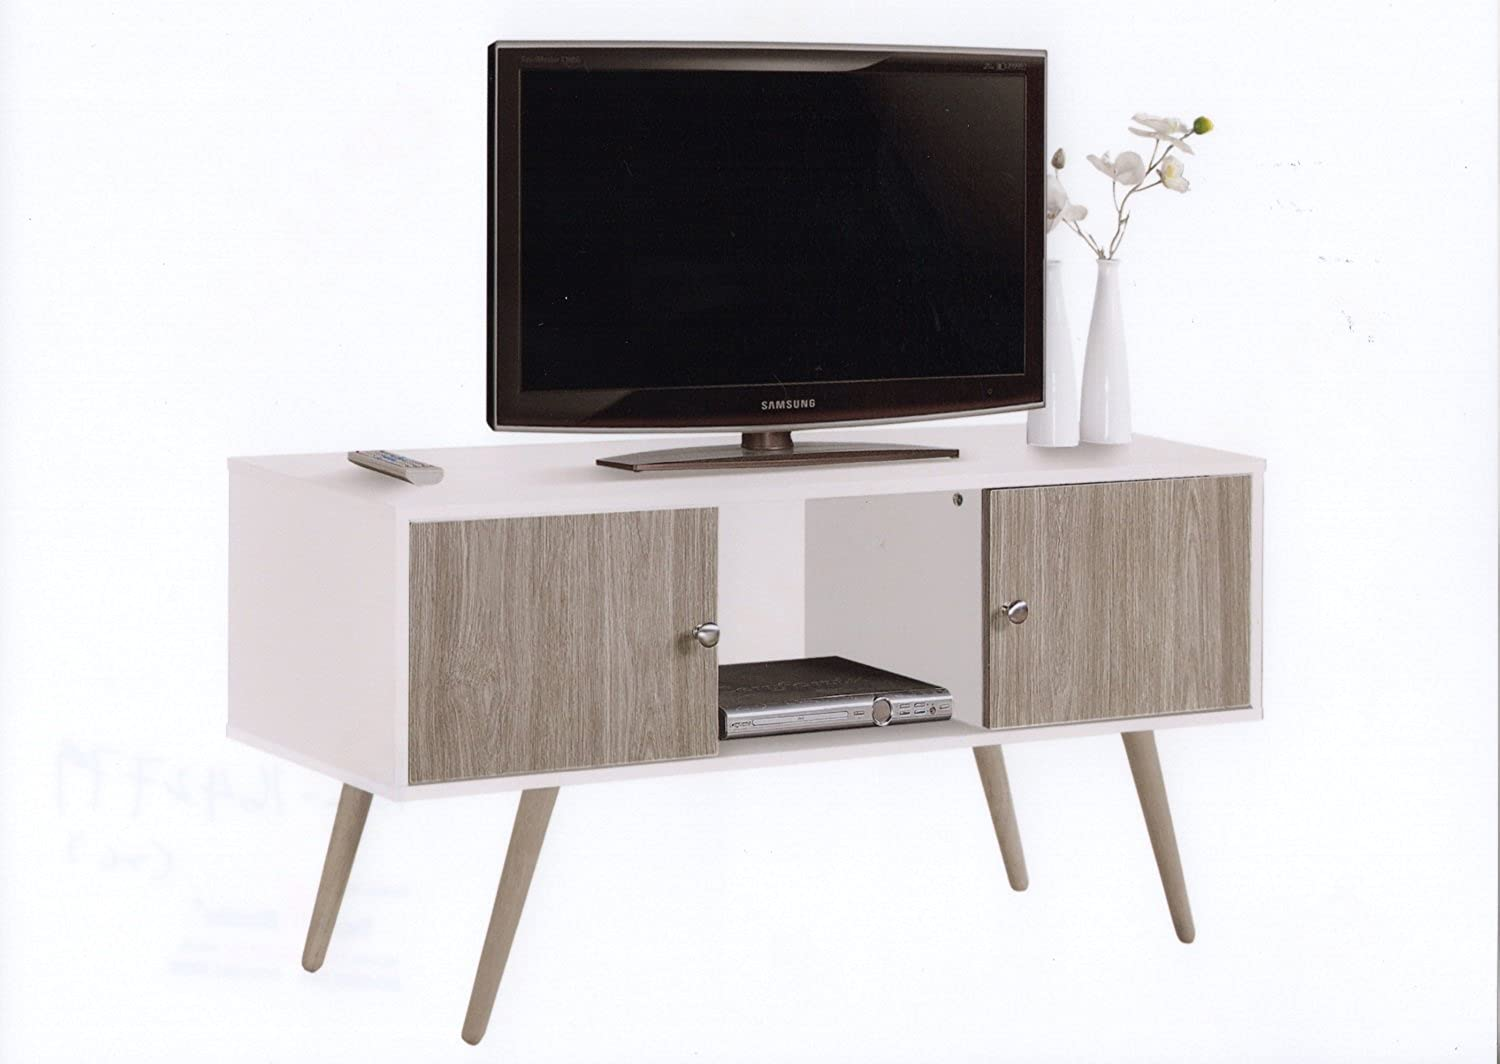 Hodedah HITV435 White-Grey Retro Style TV Stand with Two Storage Doors, and Solid Wood Legs, White Grey